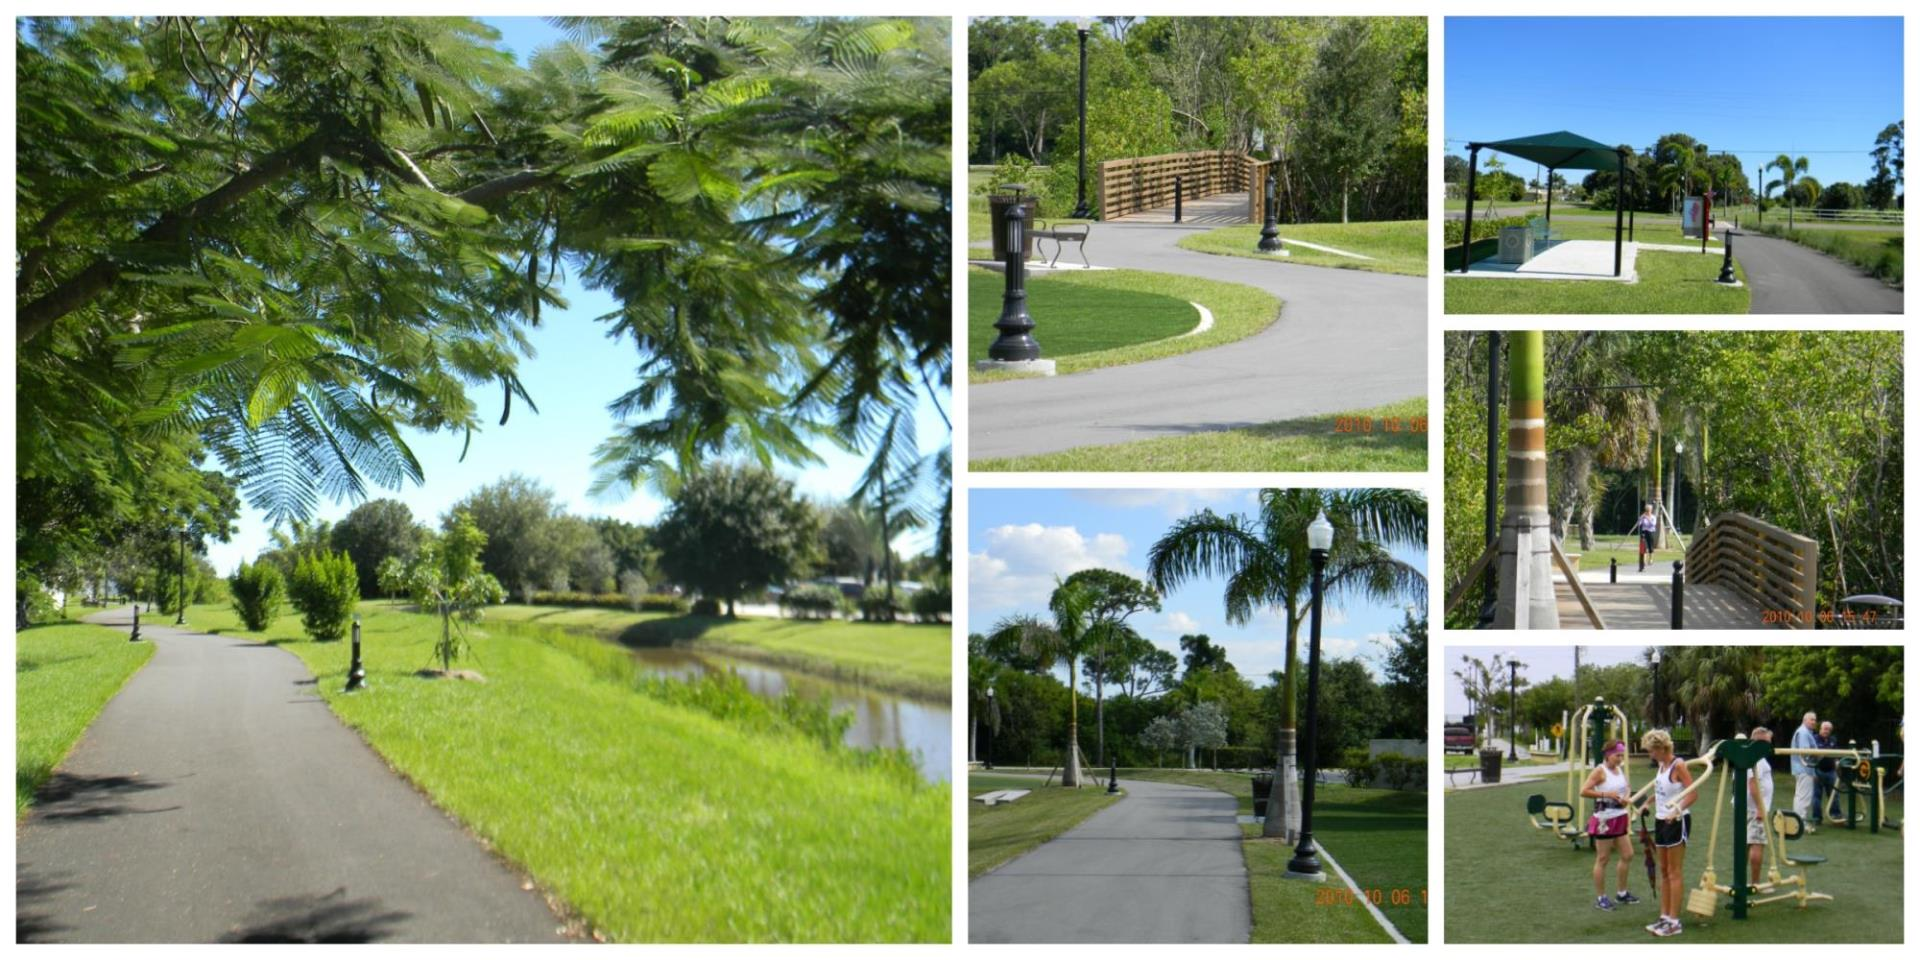 PicMonkey Collage - Linear Park